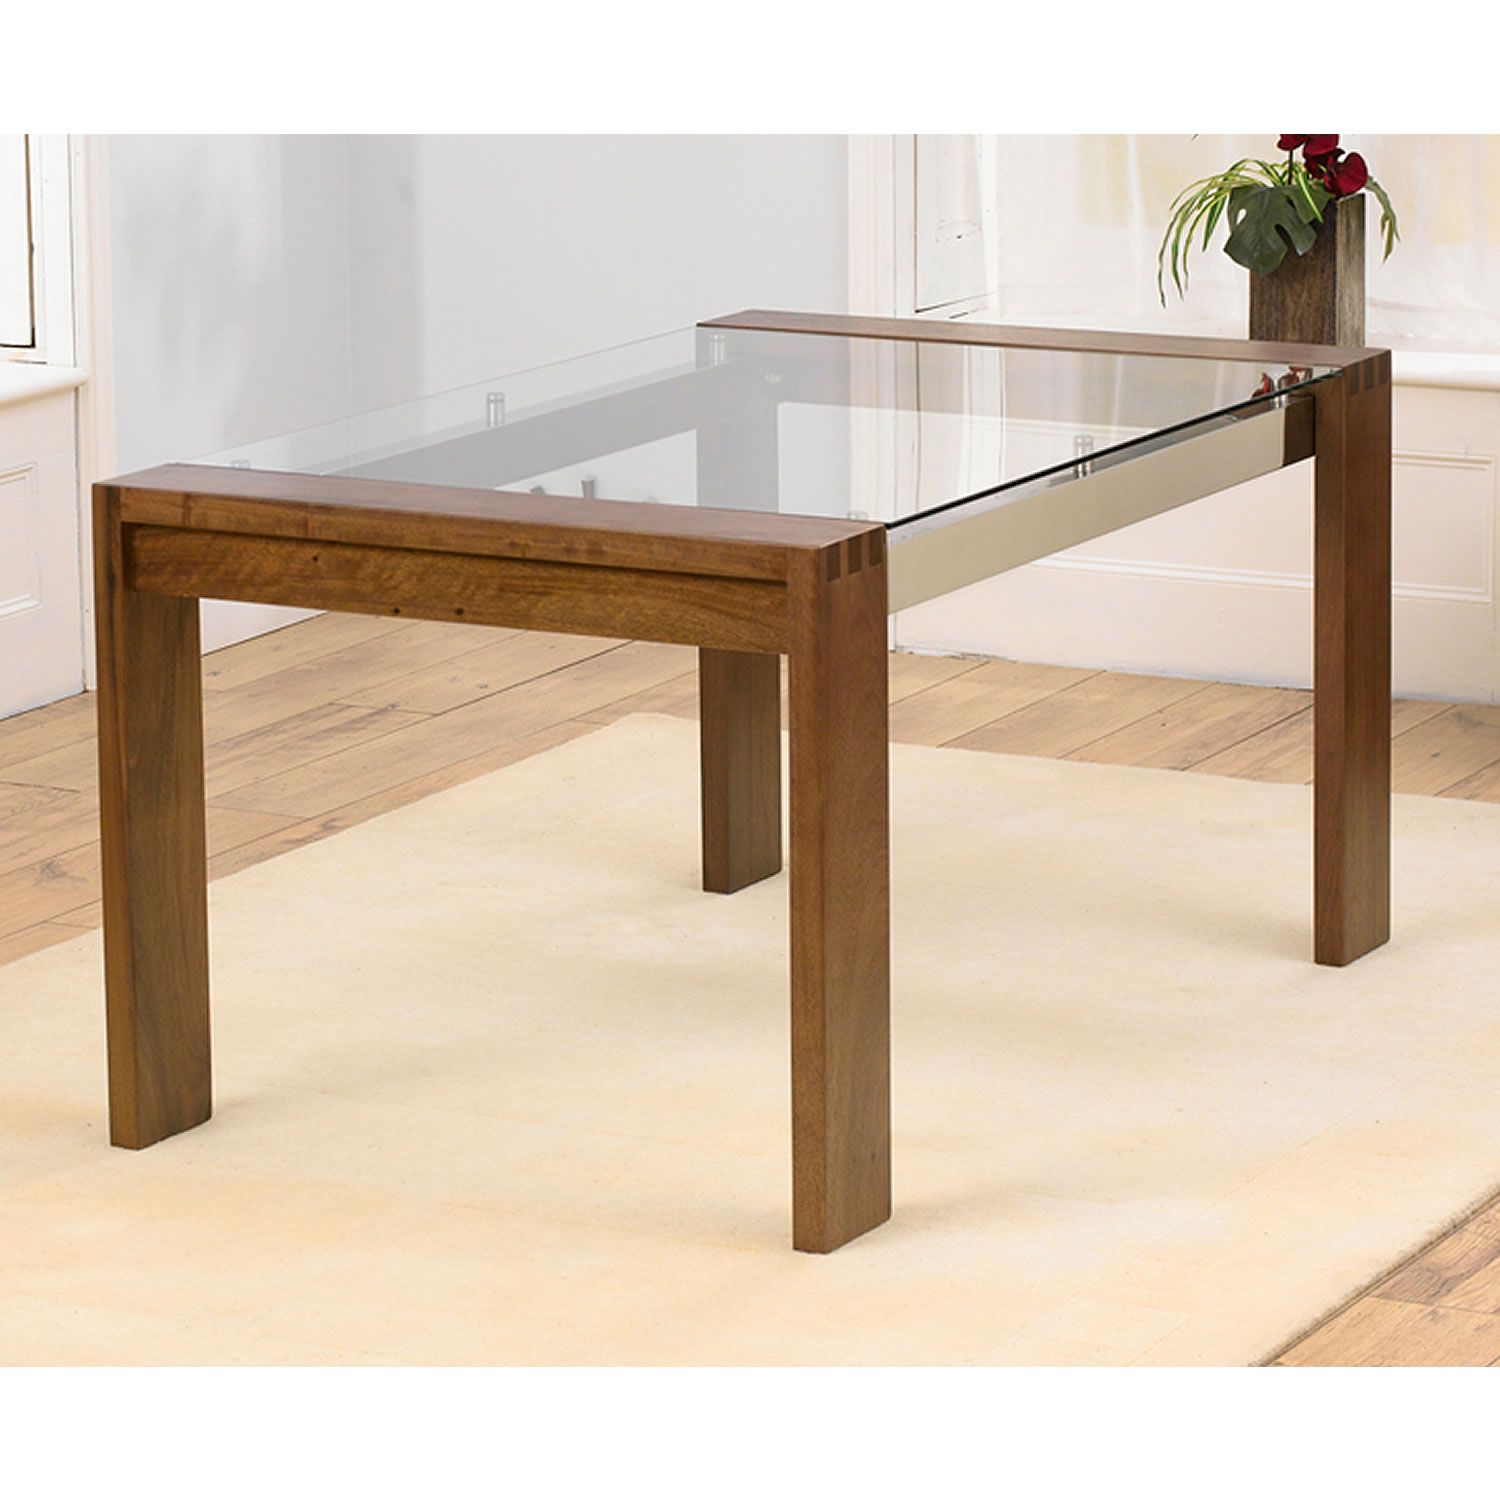 Venice Solid Walnut 150cm Dining Table With Glass Top A £